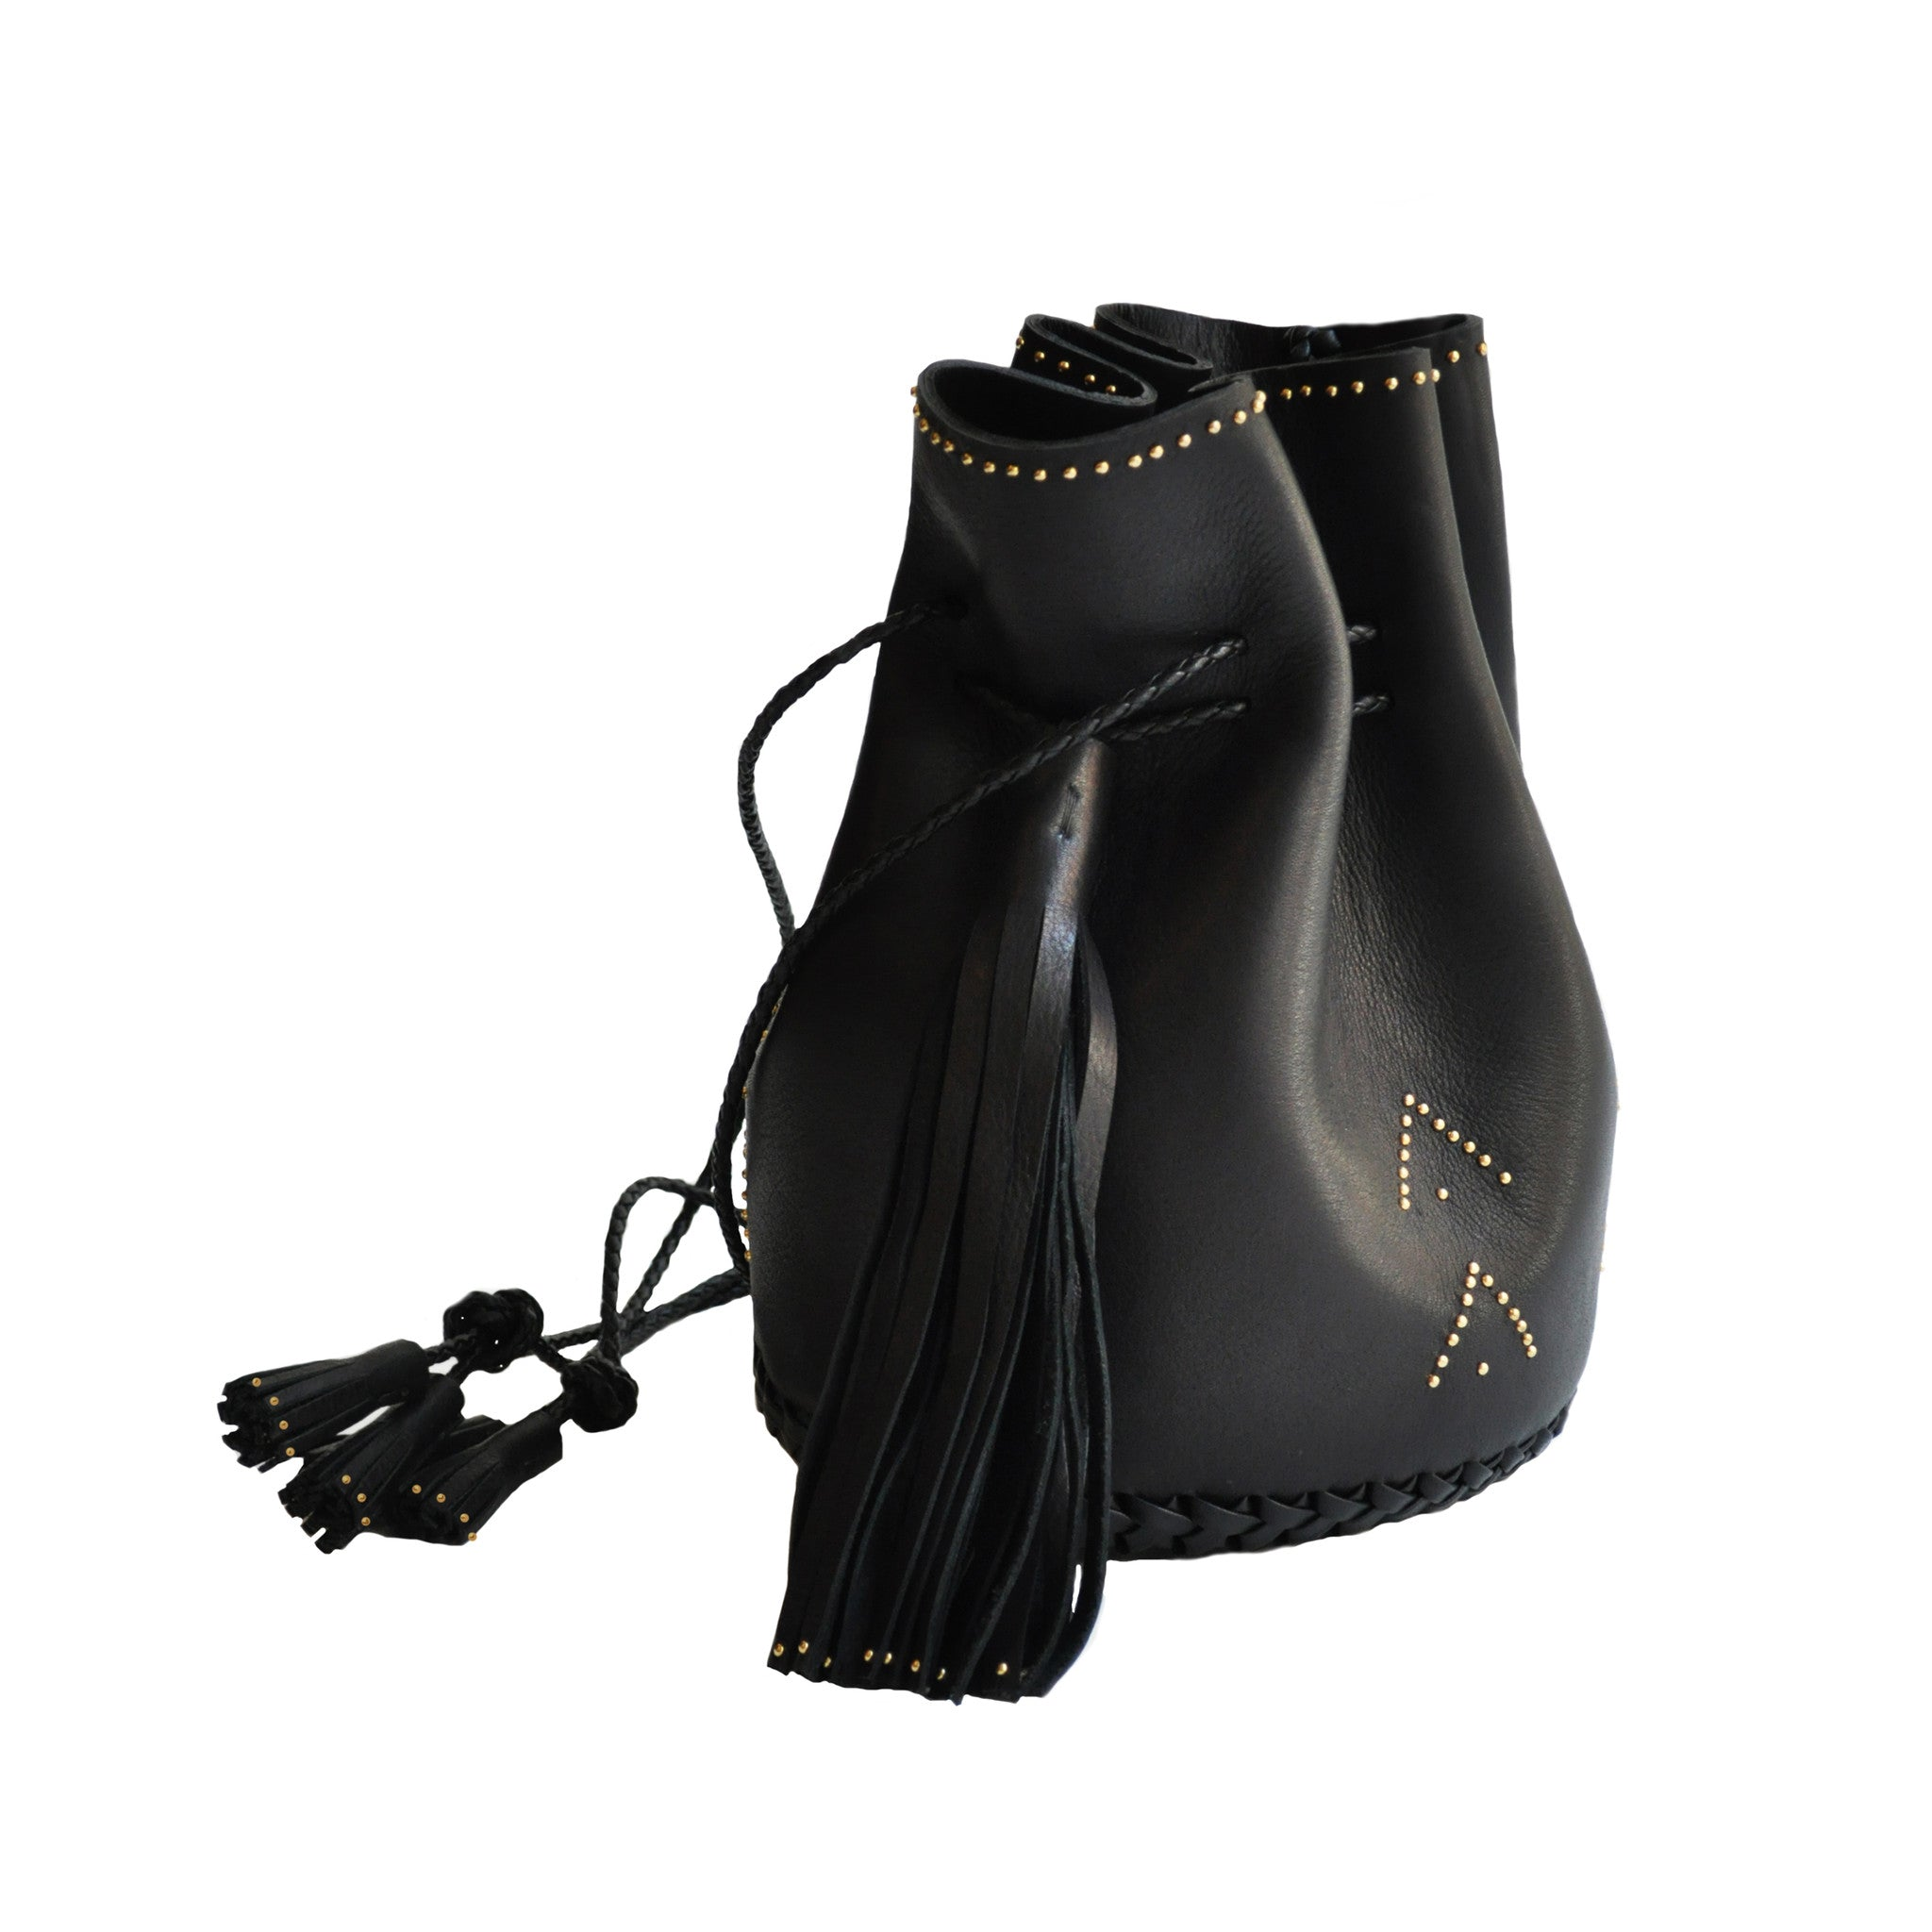 Black Hand Studded Studs Stud Chevron Leather Bullet Bag Wendy Nichol Handbag Purse Designer Handmade in NYC New York City Bucket Bag Drawstring Pouch Large Fringe Tassel